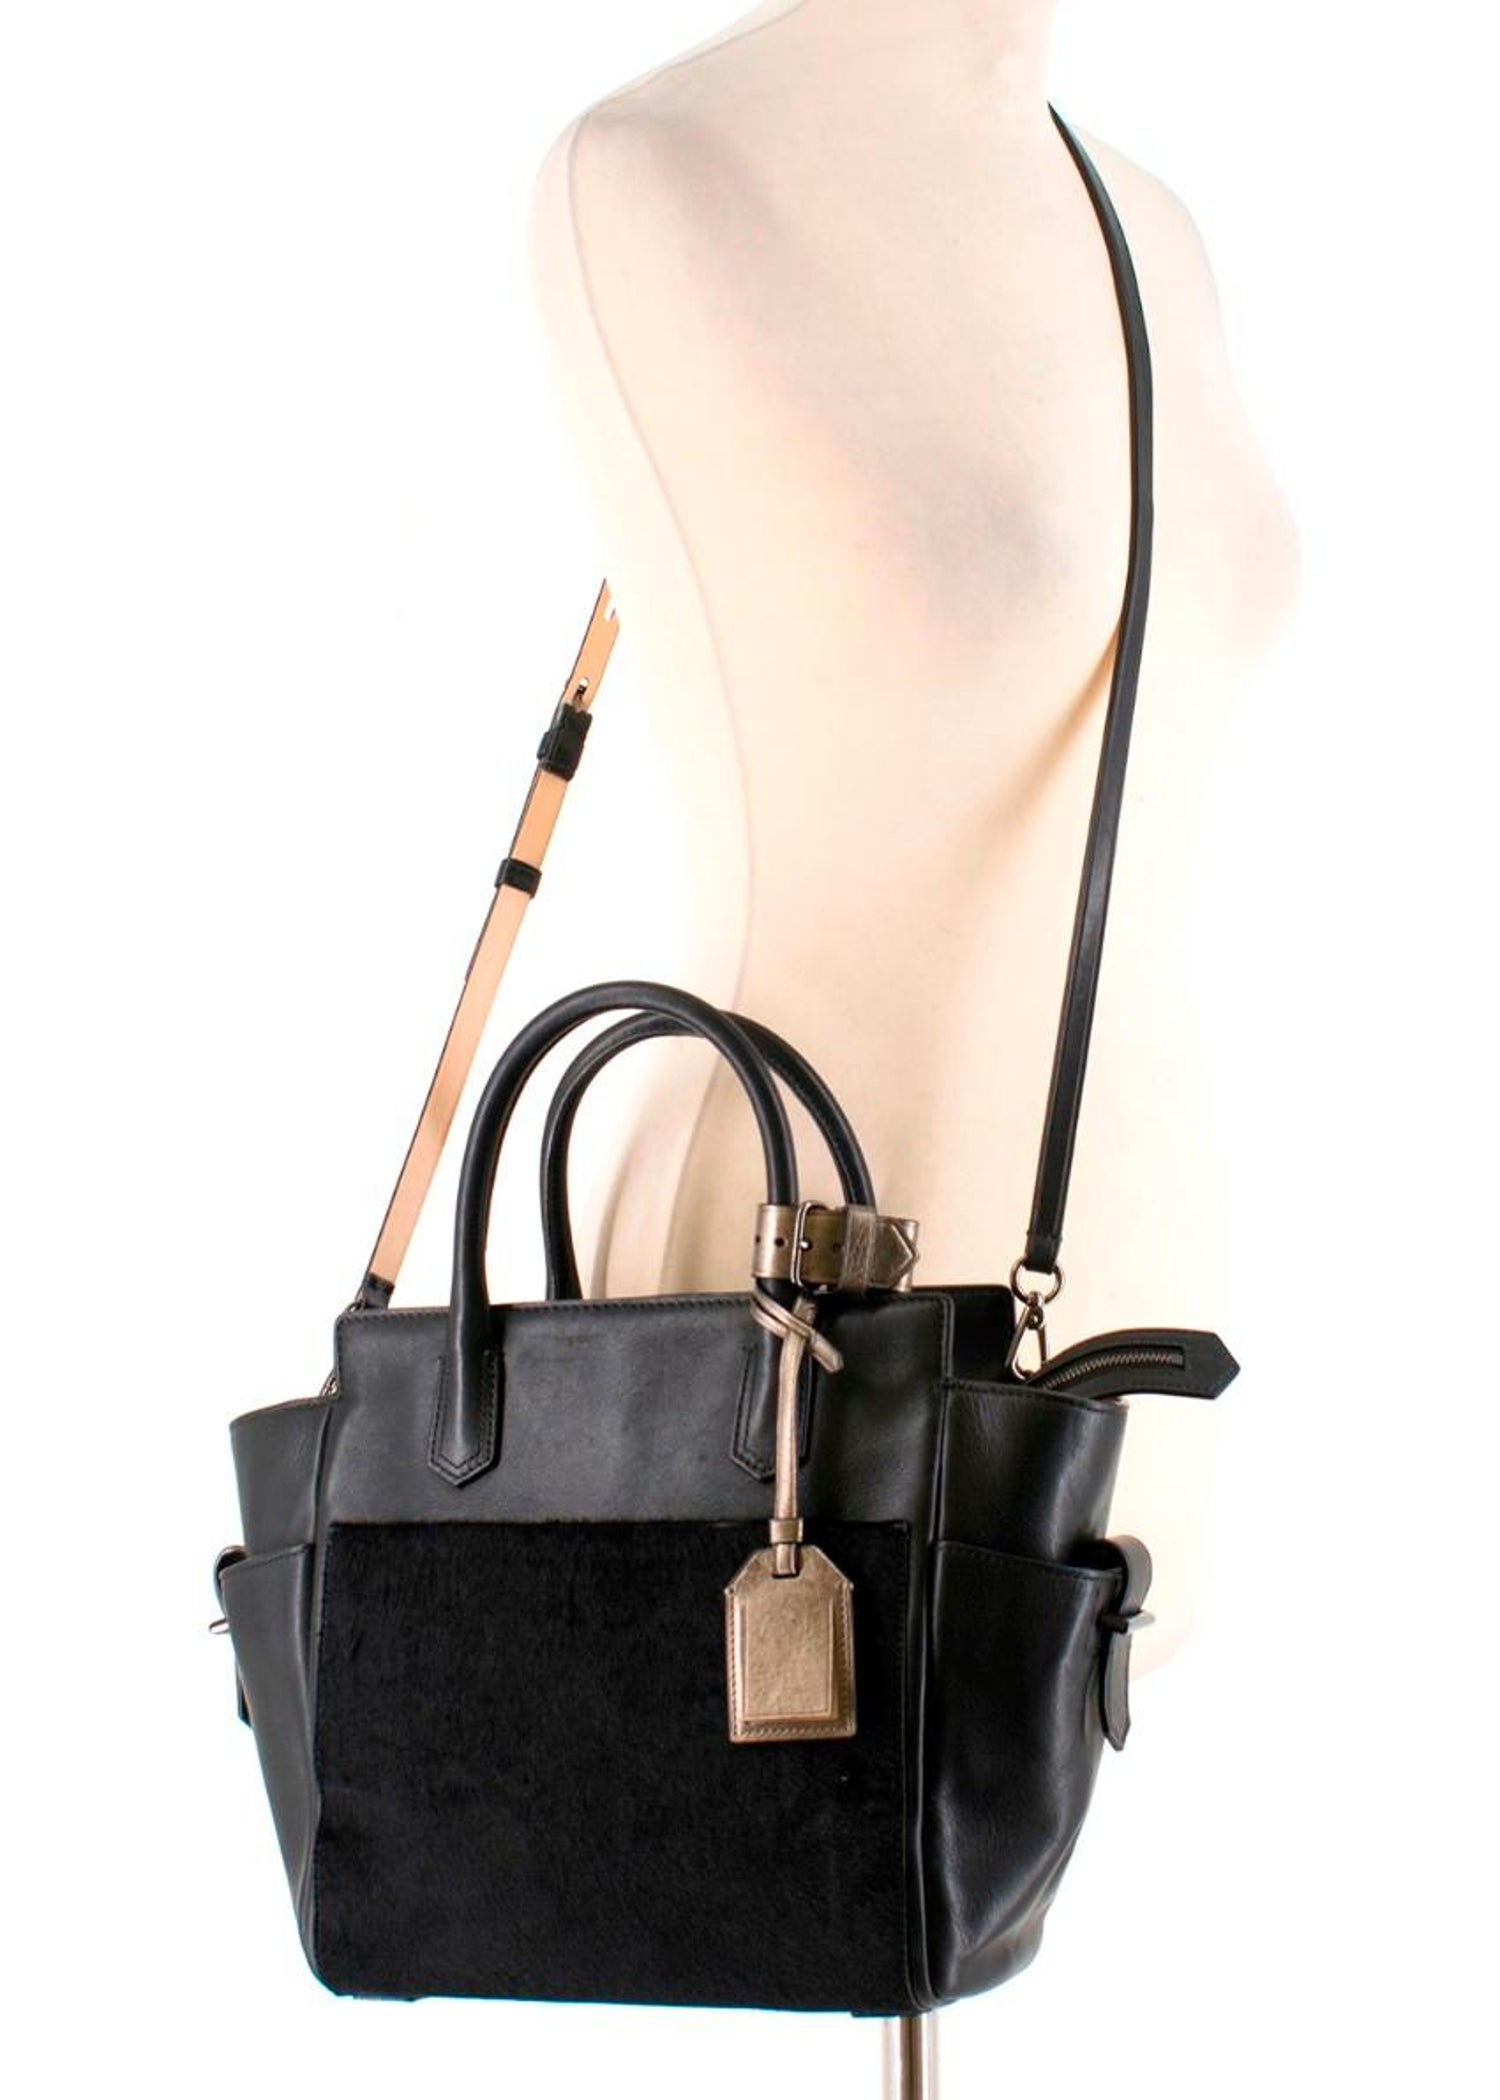 28c3deffd6 Reed Krakoff calf hair and leather bag For Sale at 1stdibs